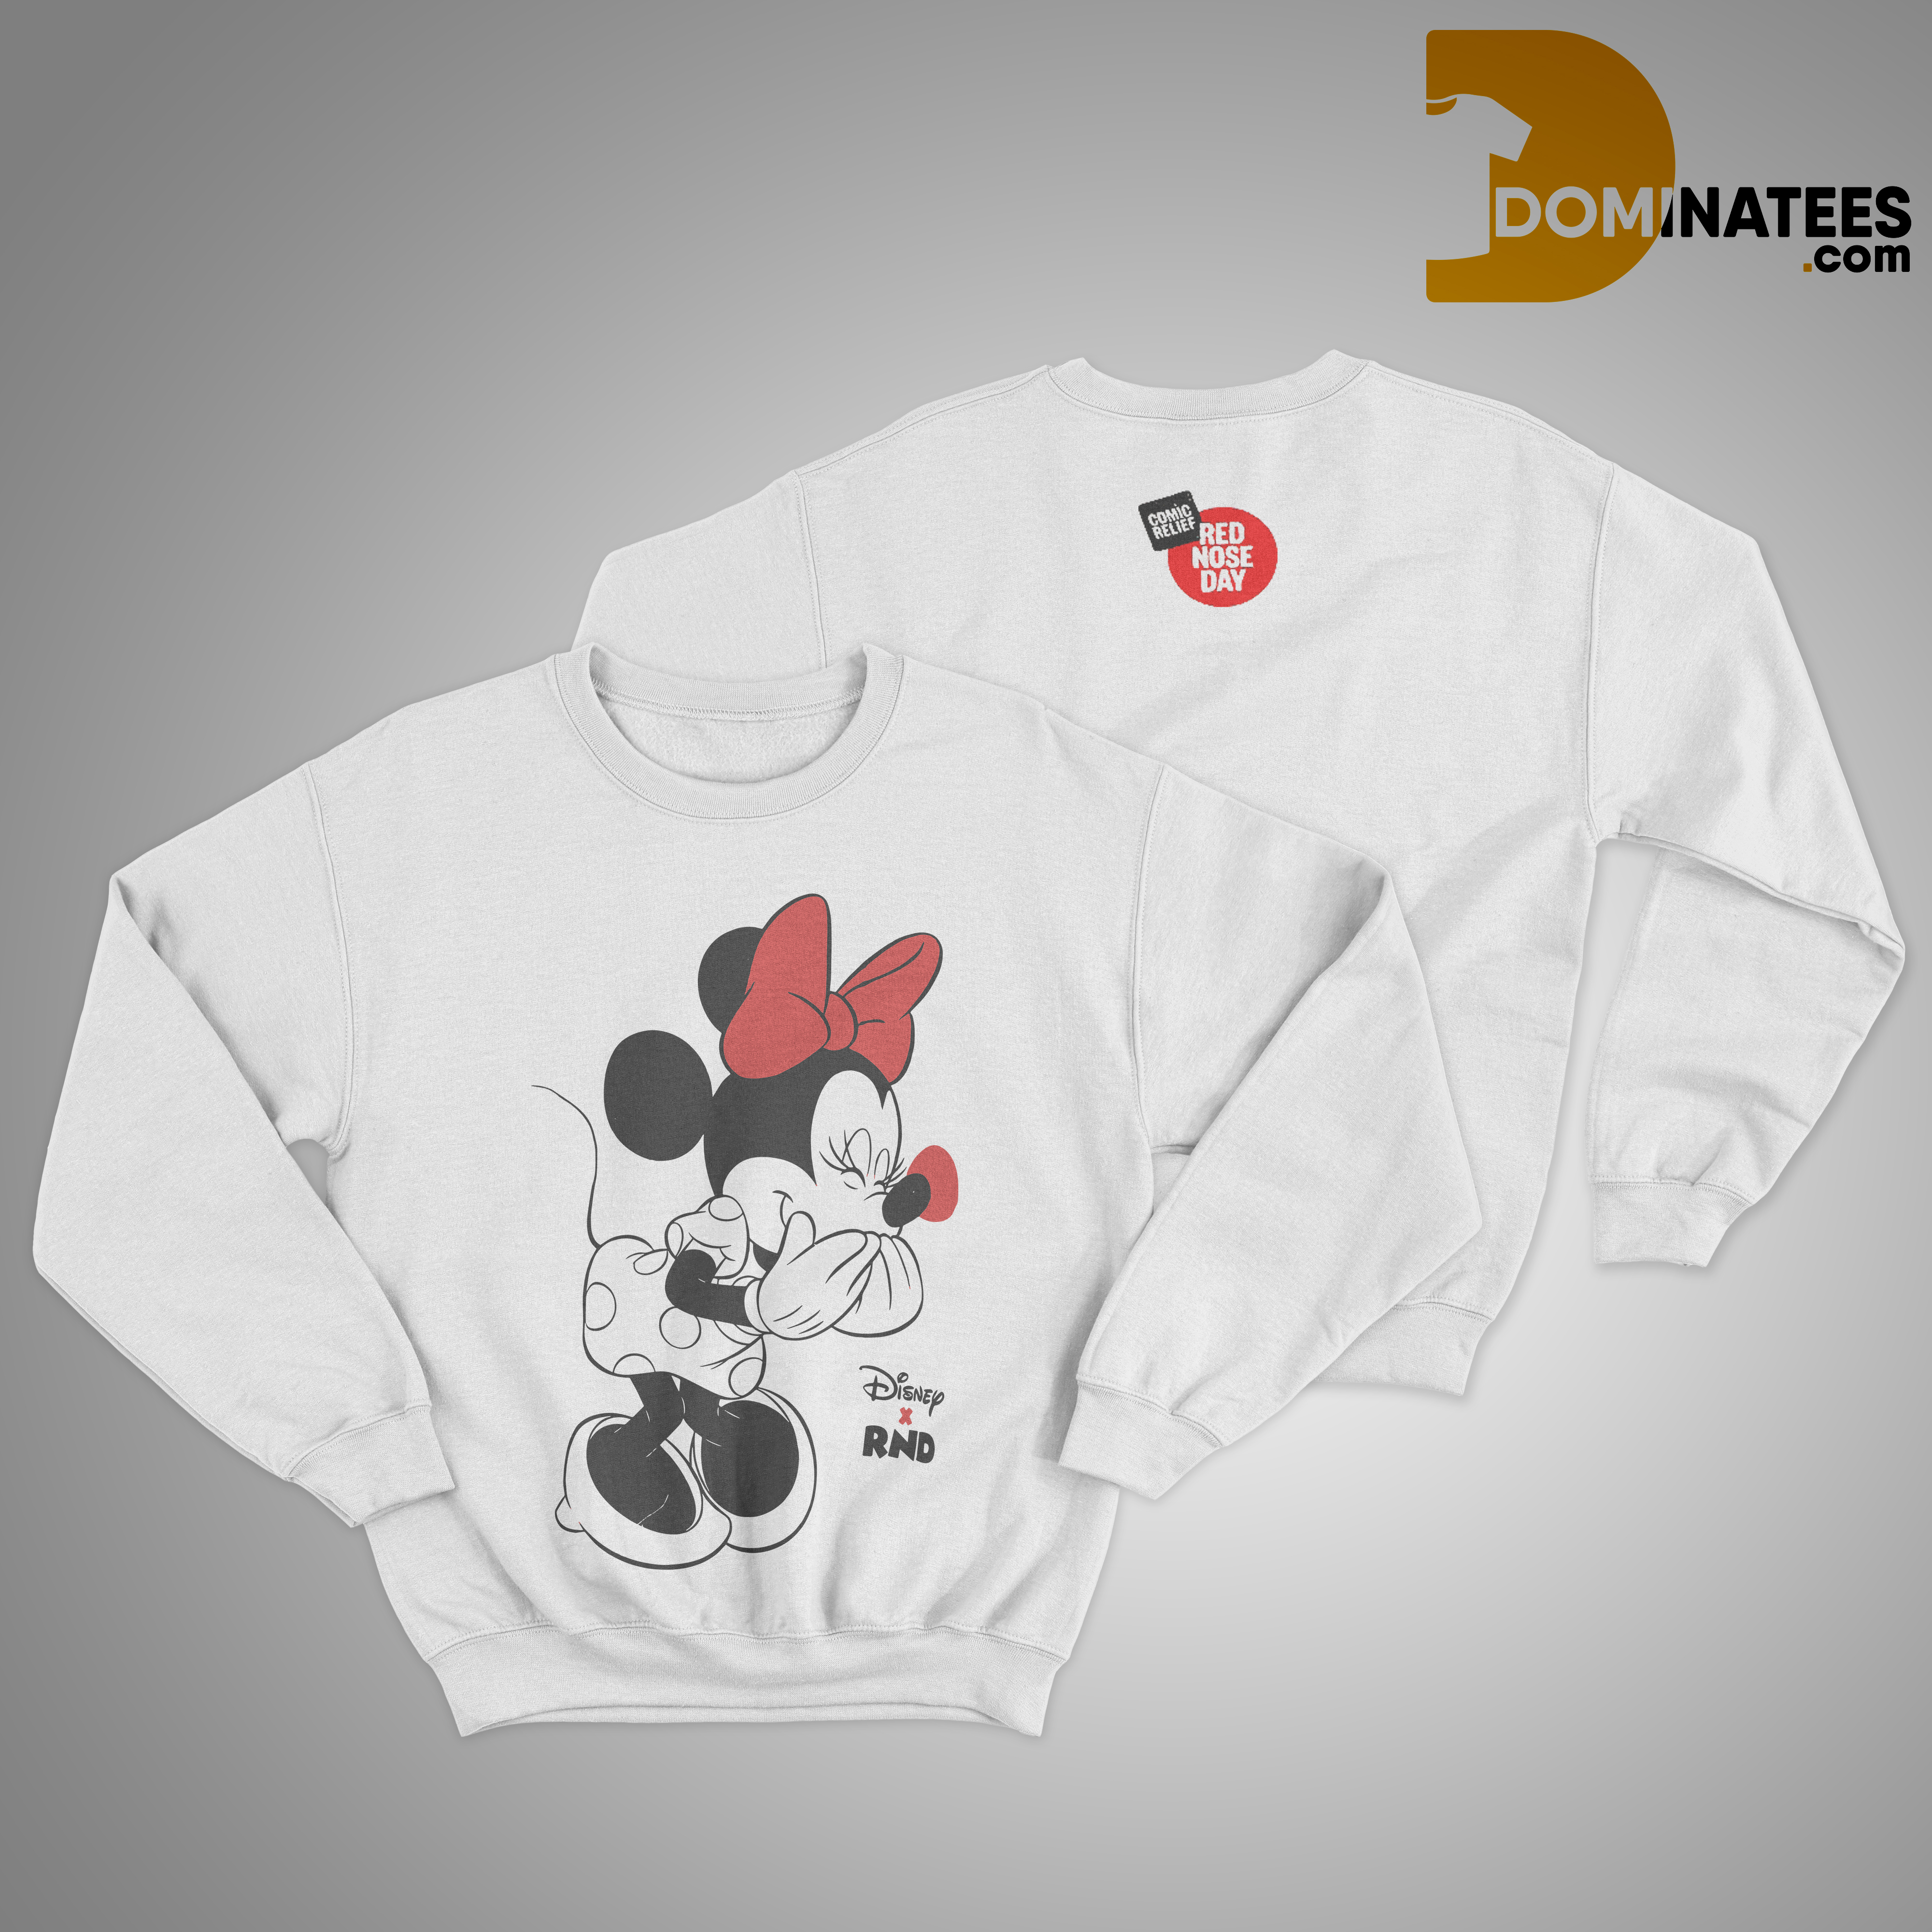 RED NOSE DAY Minnie Mouse Sweater